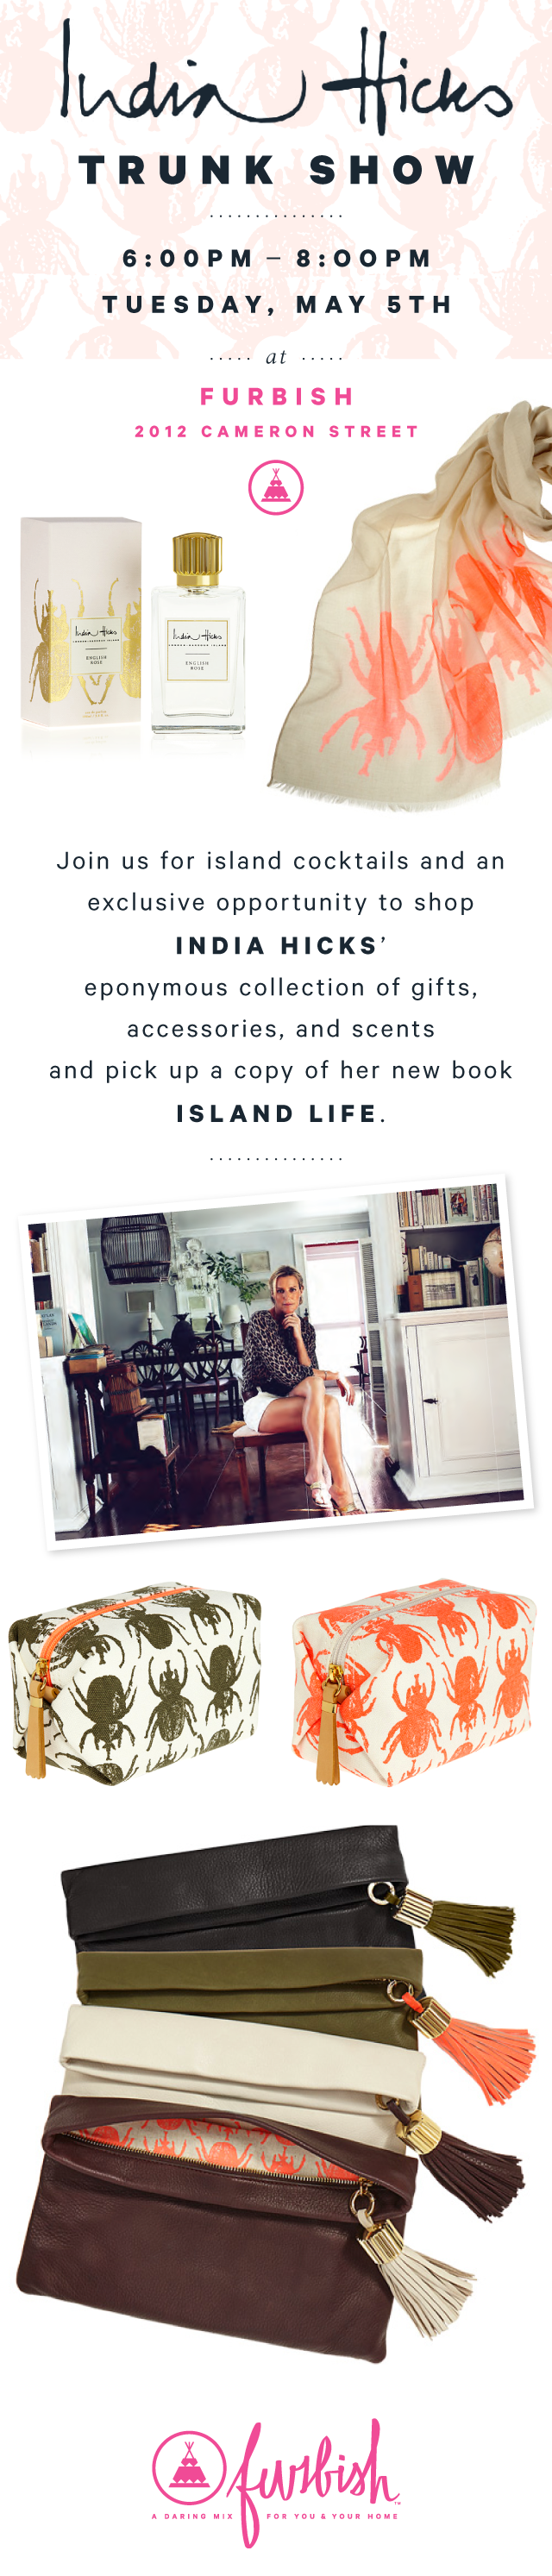 IndiaHicks-TrunkShow-04_15-BLOG